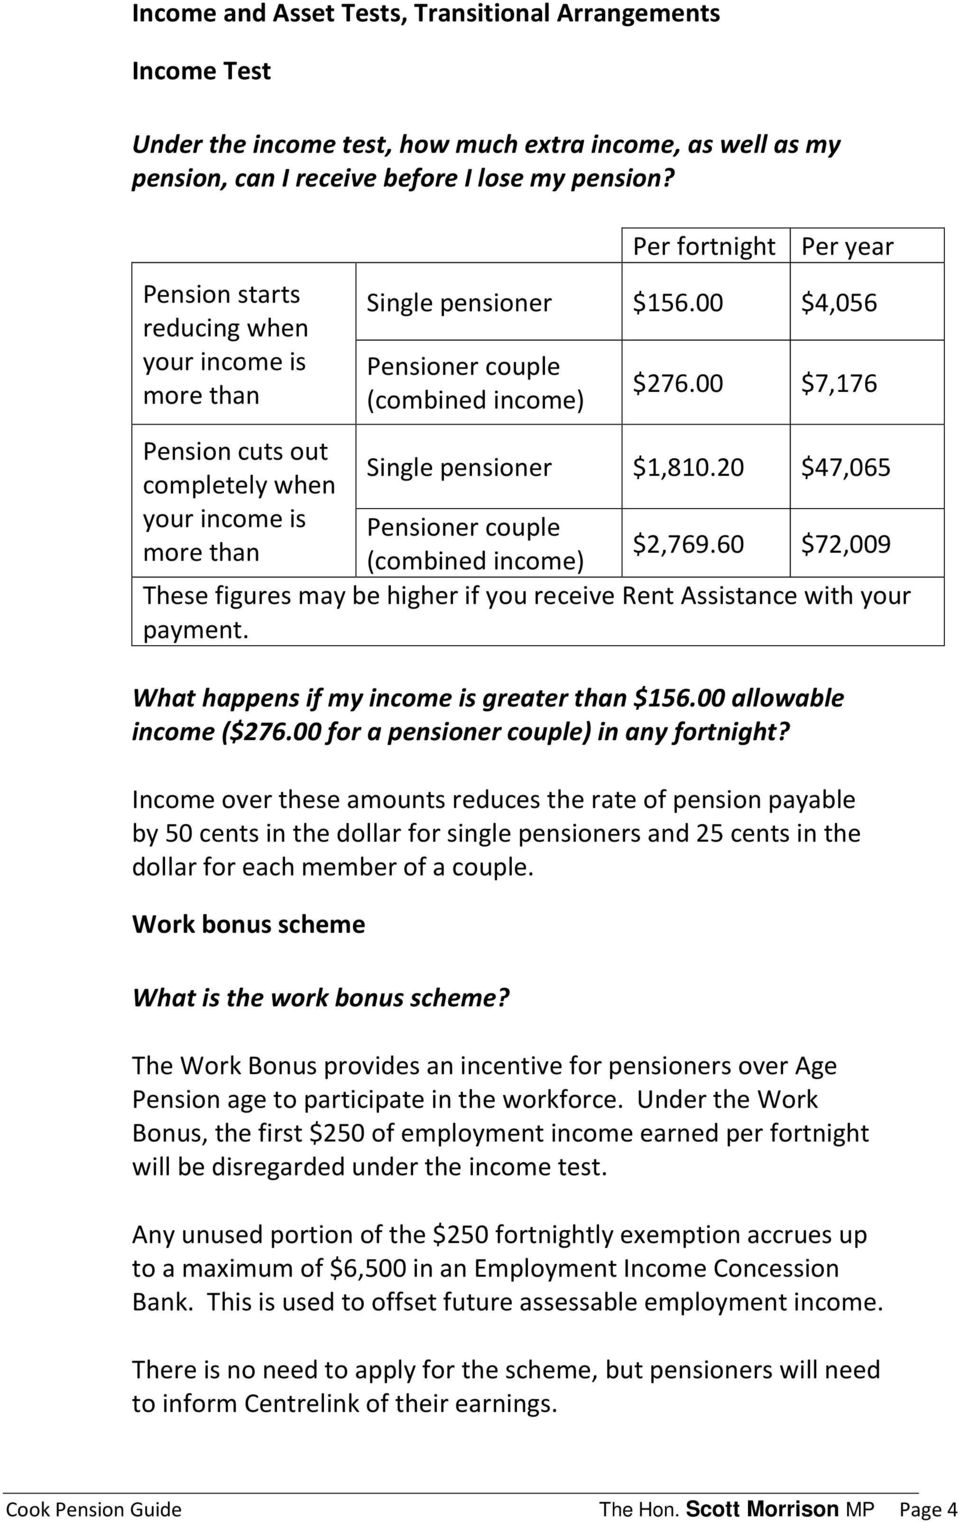 20 $47,065 completely when your income is Pensioner couple more than $2,769.60 $72,009 (combined income) These figures may be higher if you receive Rent Assistance with your payment.